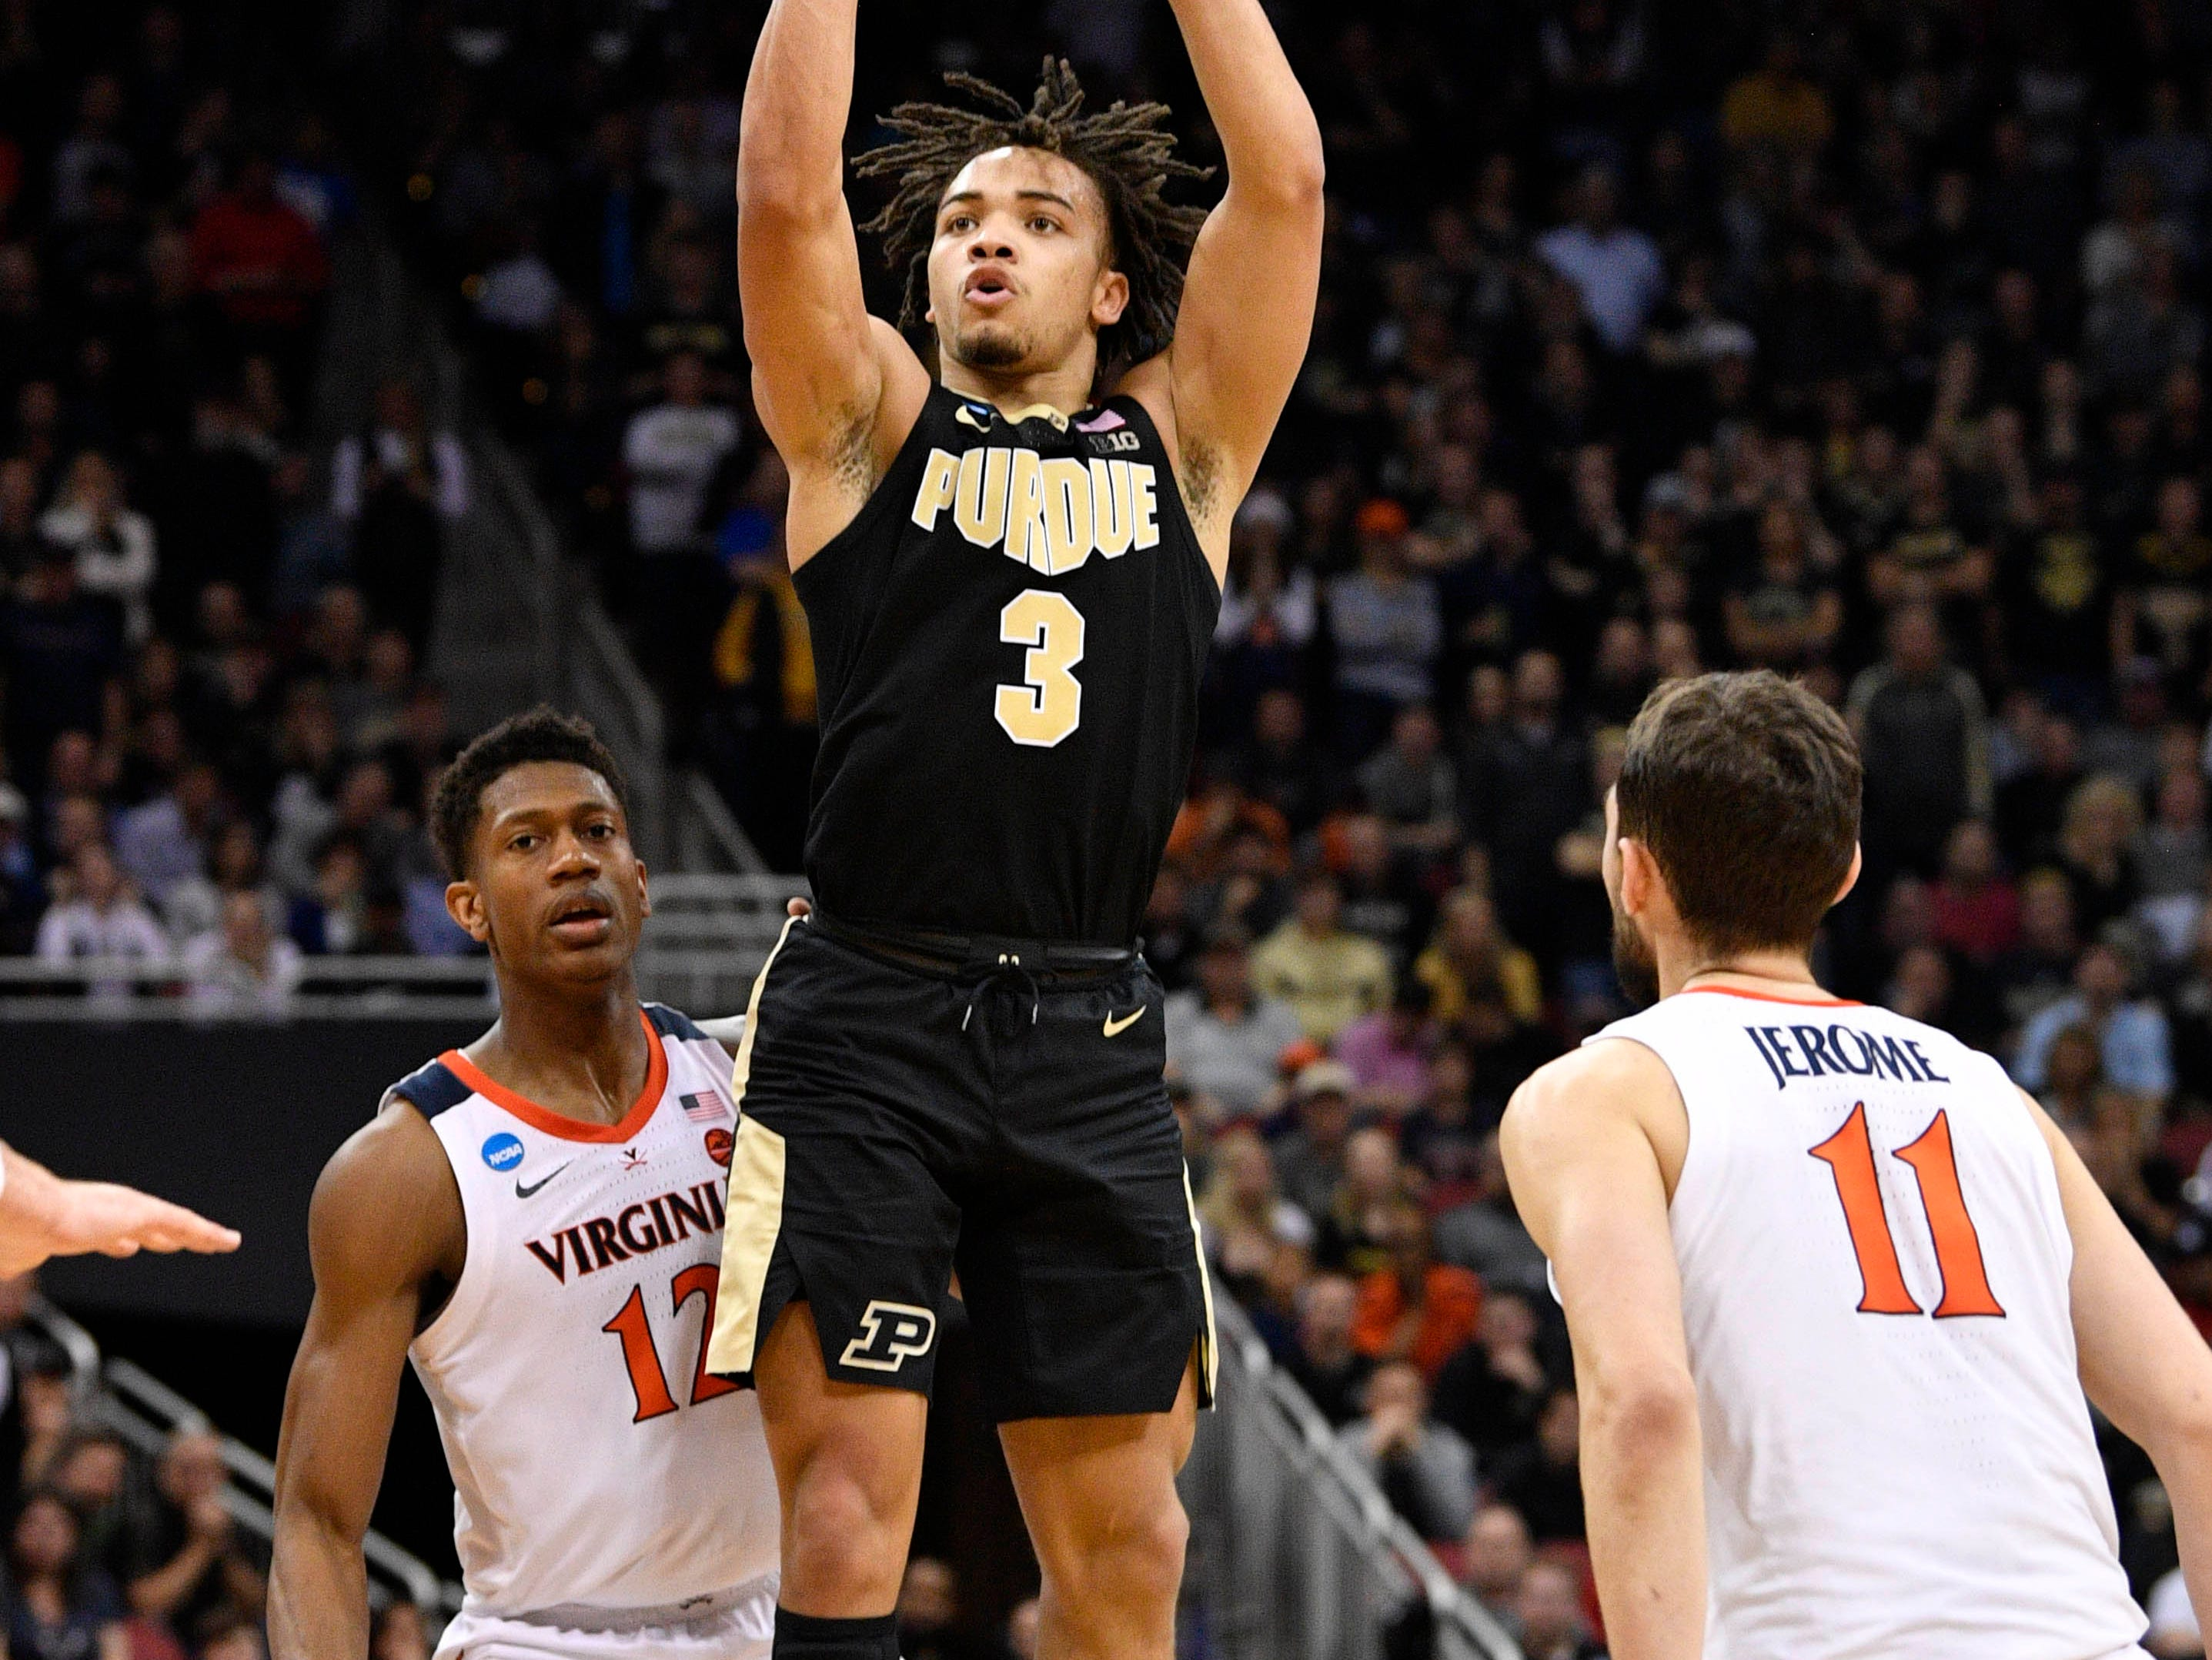 Mar 30, 2019; Louisville, KY, United States; Purdue Boilermakers guard Carsen Edwards (3) shoots over Virginia Cavaliers guard De'Andre Hunter (12) and guard Ty Jerome (11) during the second half in the championship game of the south regional of the 2019 NCAA Tournament at KFC Yum Center. Mandatory Credit: Jamie Rhodes-USA TODAY Sports